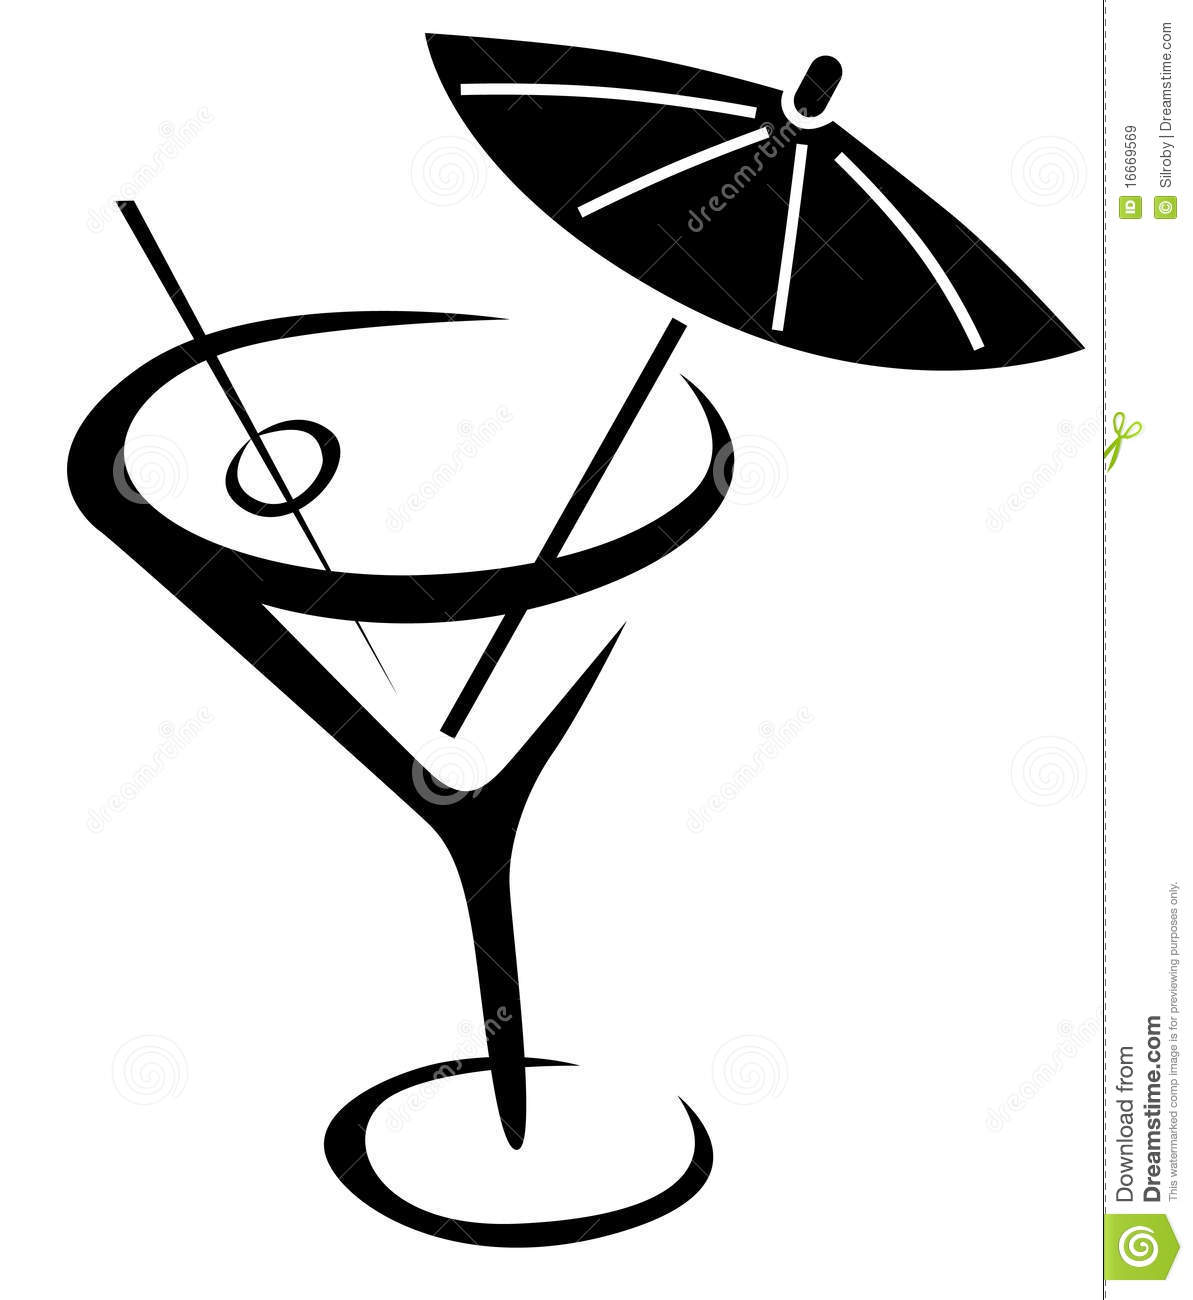 Clip Art Cocktail Clipart drink umbrella clipart kid royalty free stock images image 16669569